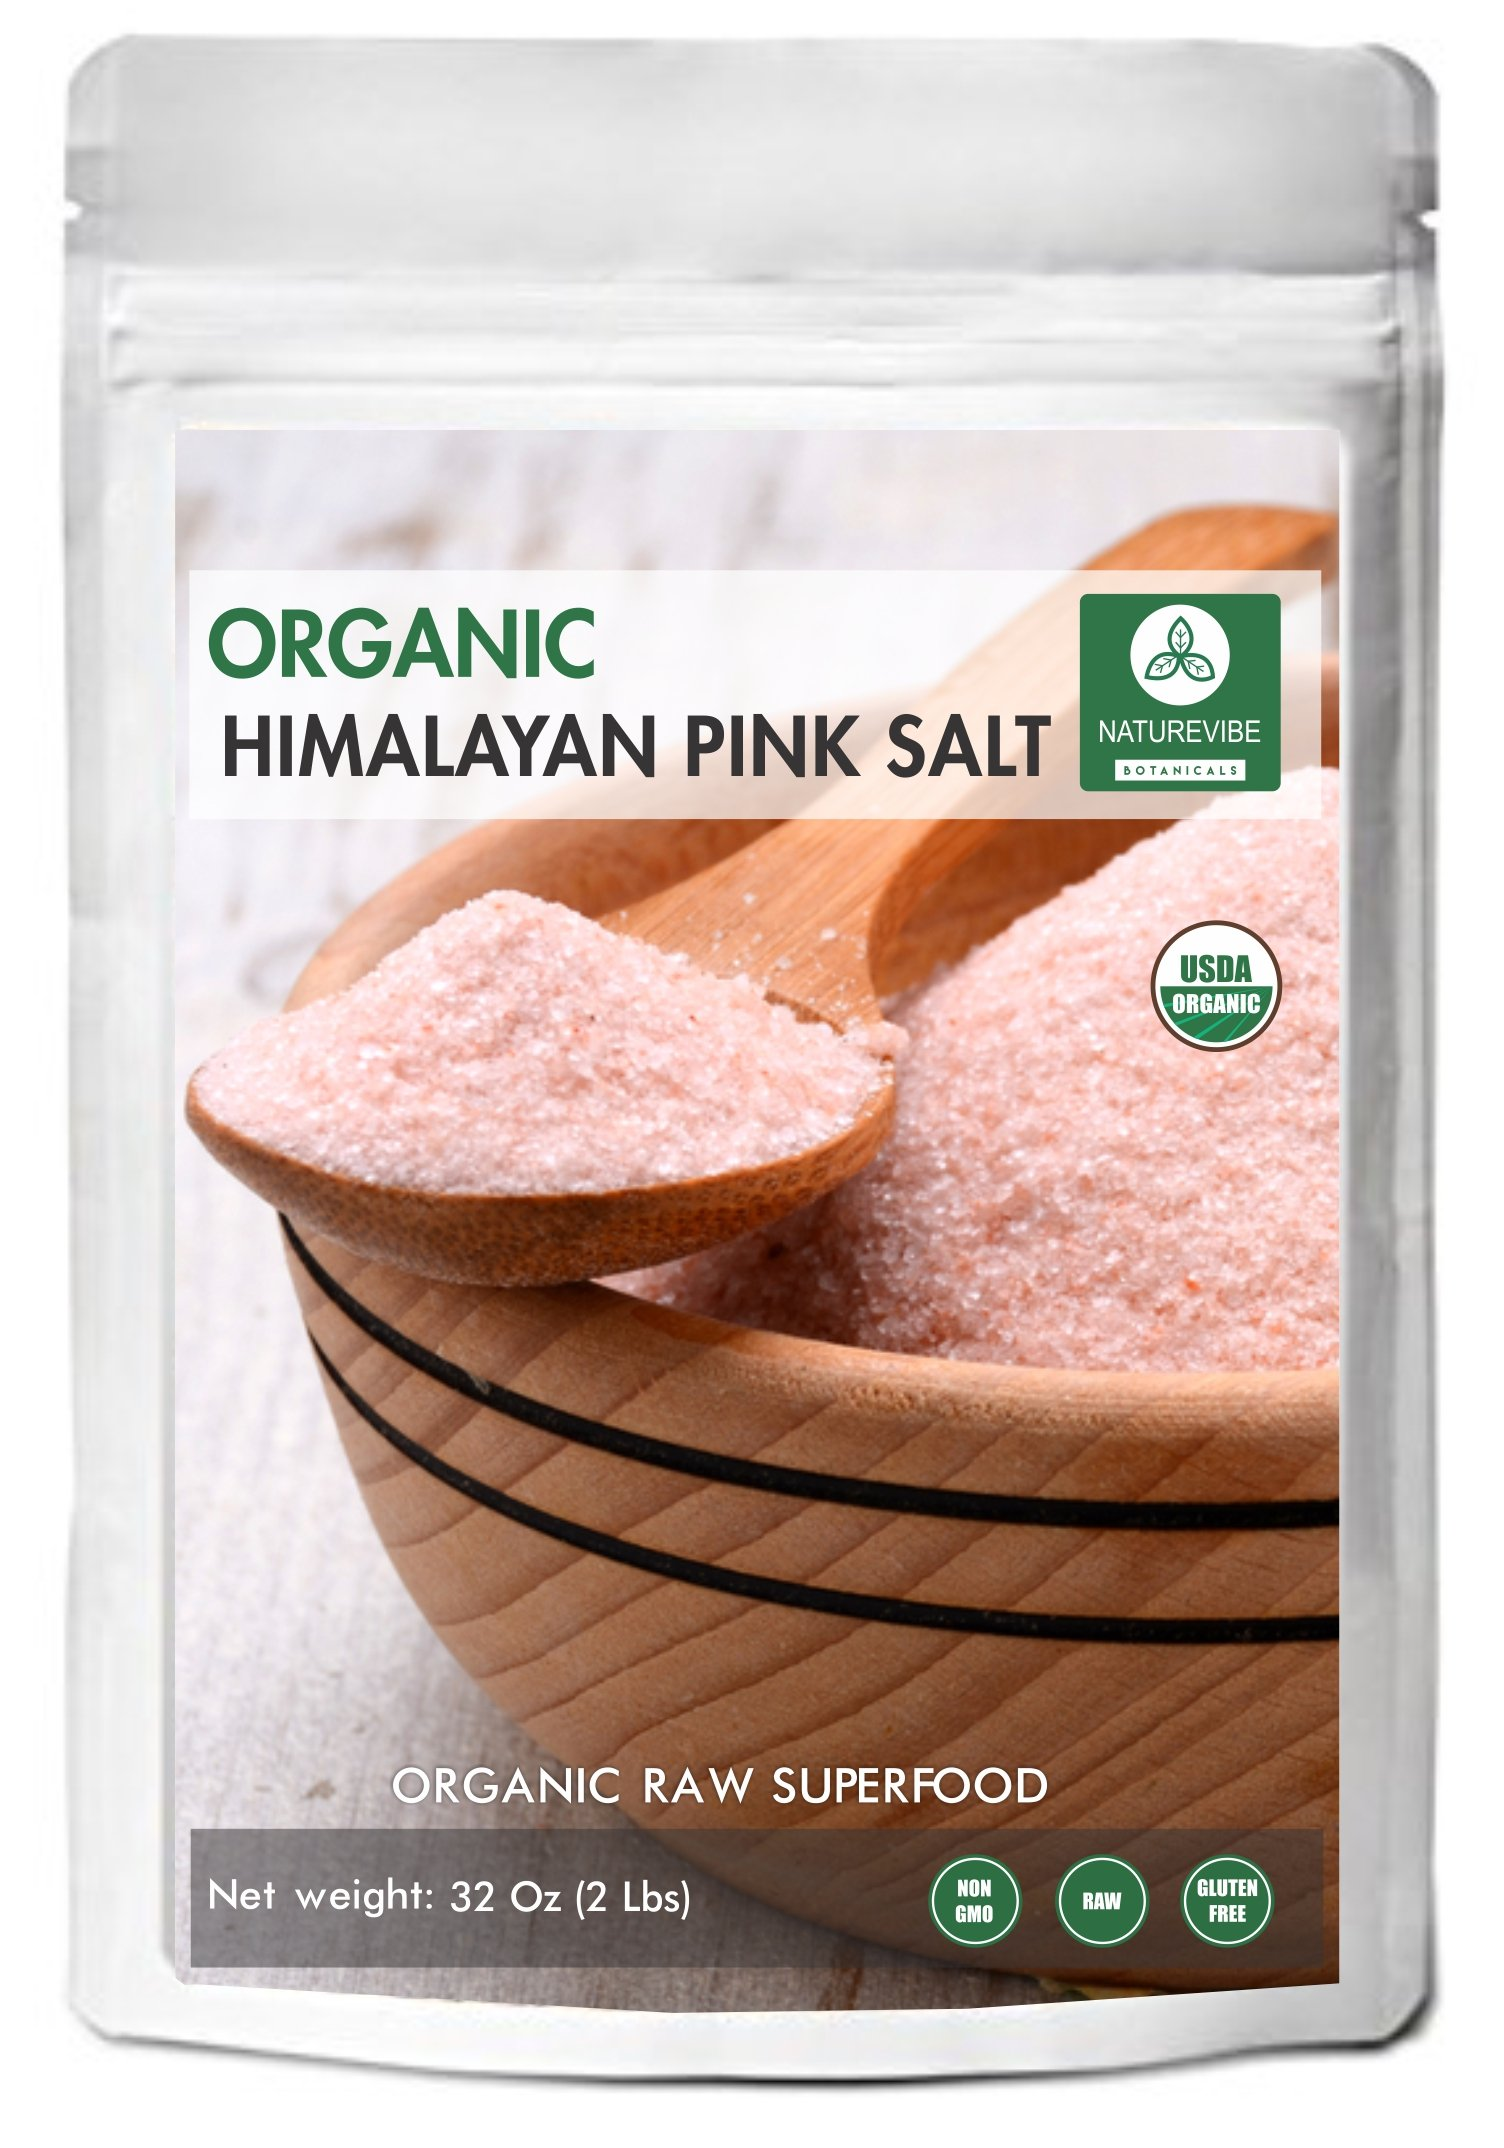 100% Natural & Healthy Himalayan Pink Salt (2lb) by Naturevibe Botanicals, Gluten-Free & Non-GMO (32 ounces) (Fine - Cooking Size)